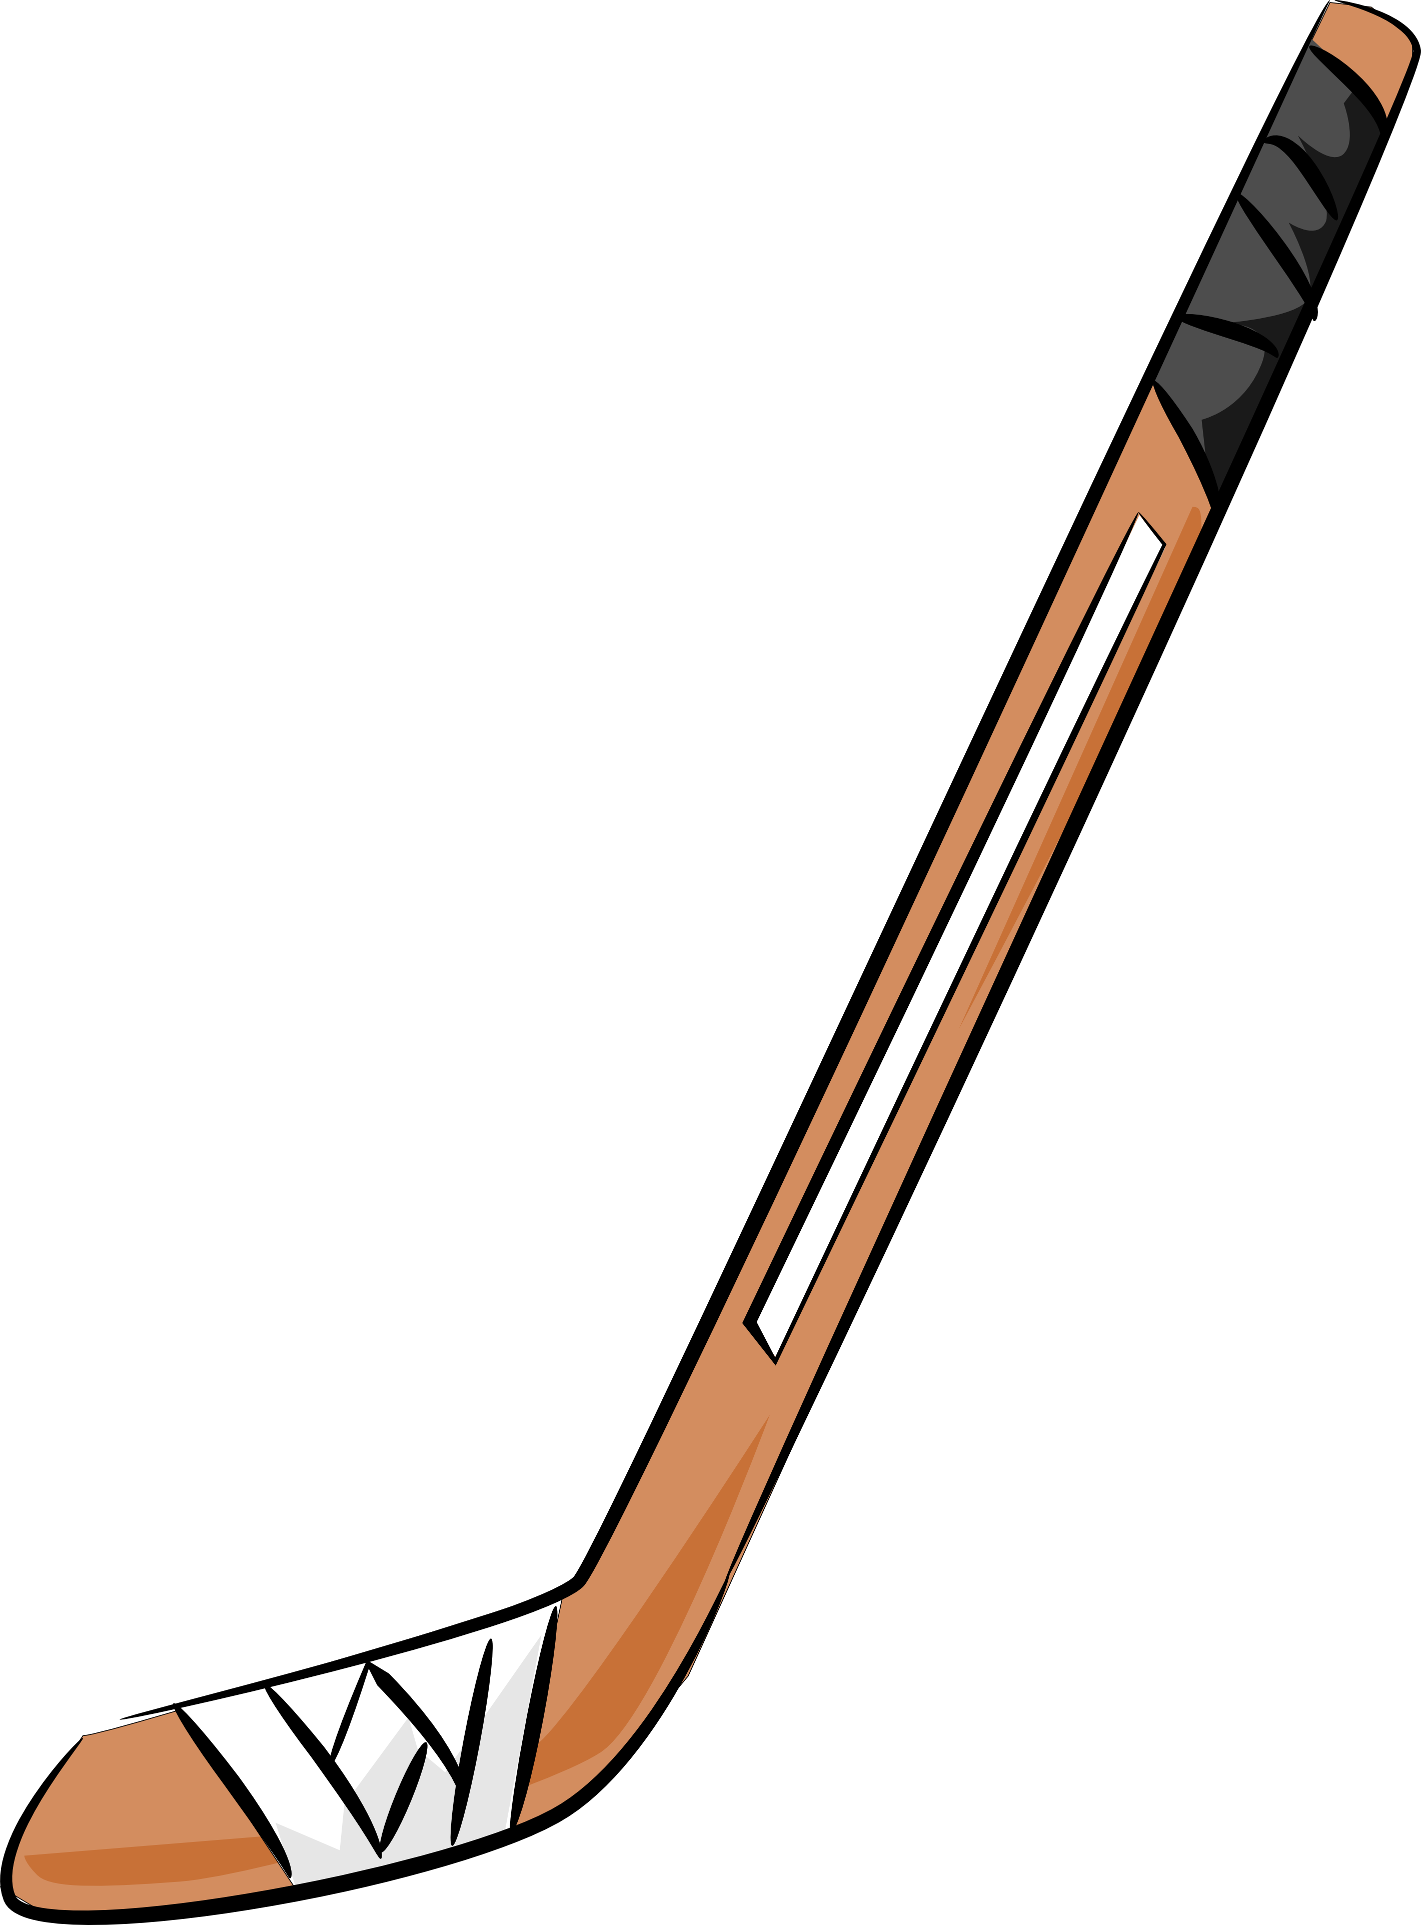 Cross batons clipart jpg black and white 28+ Collection of Hockey Stick Clipart Images | High quality, free ... jpg black and white